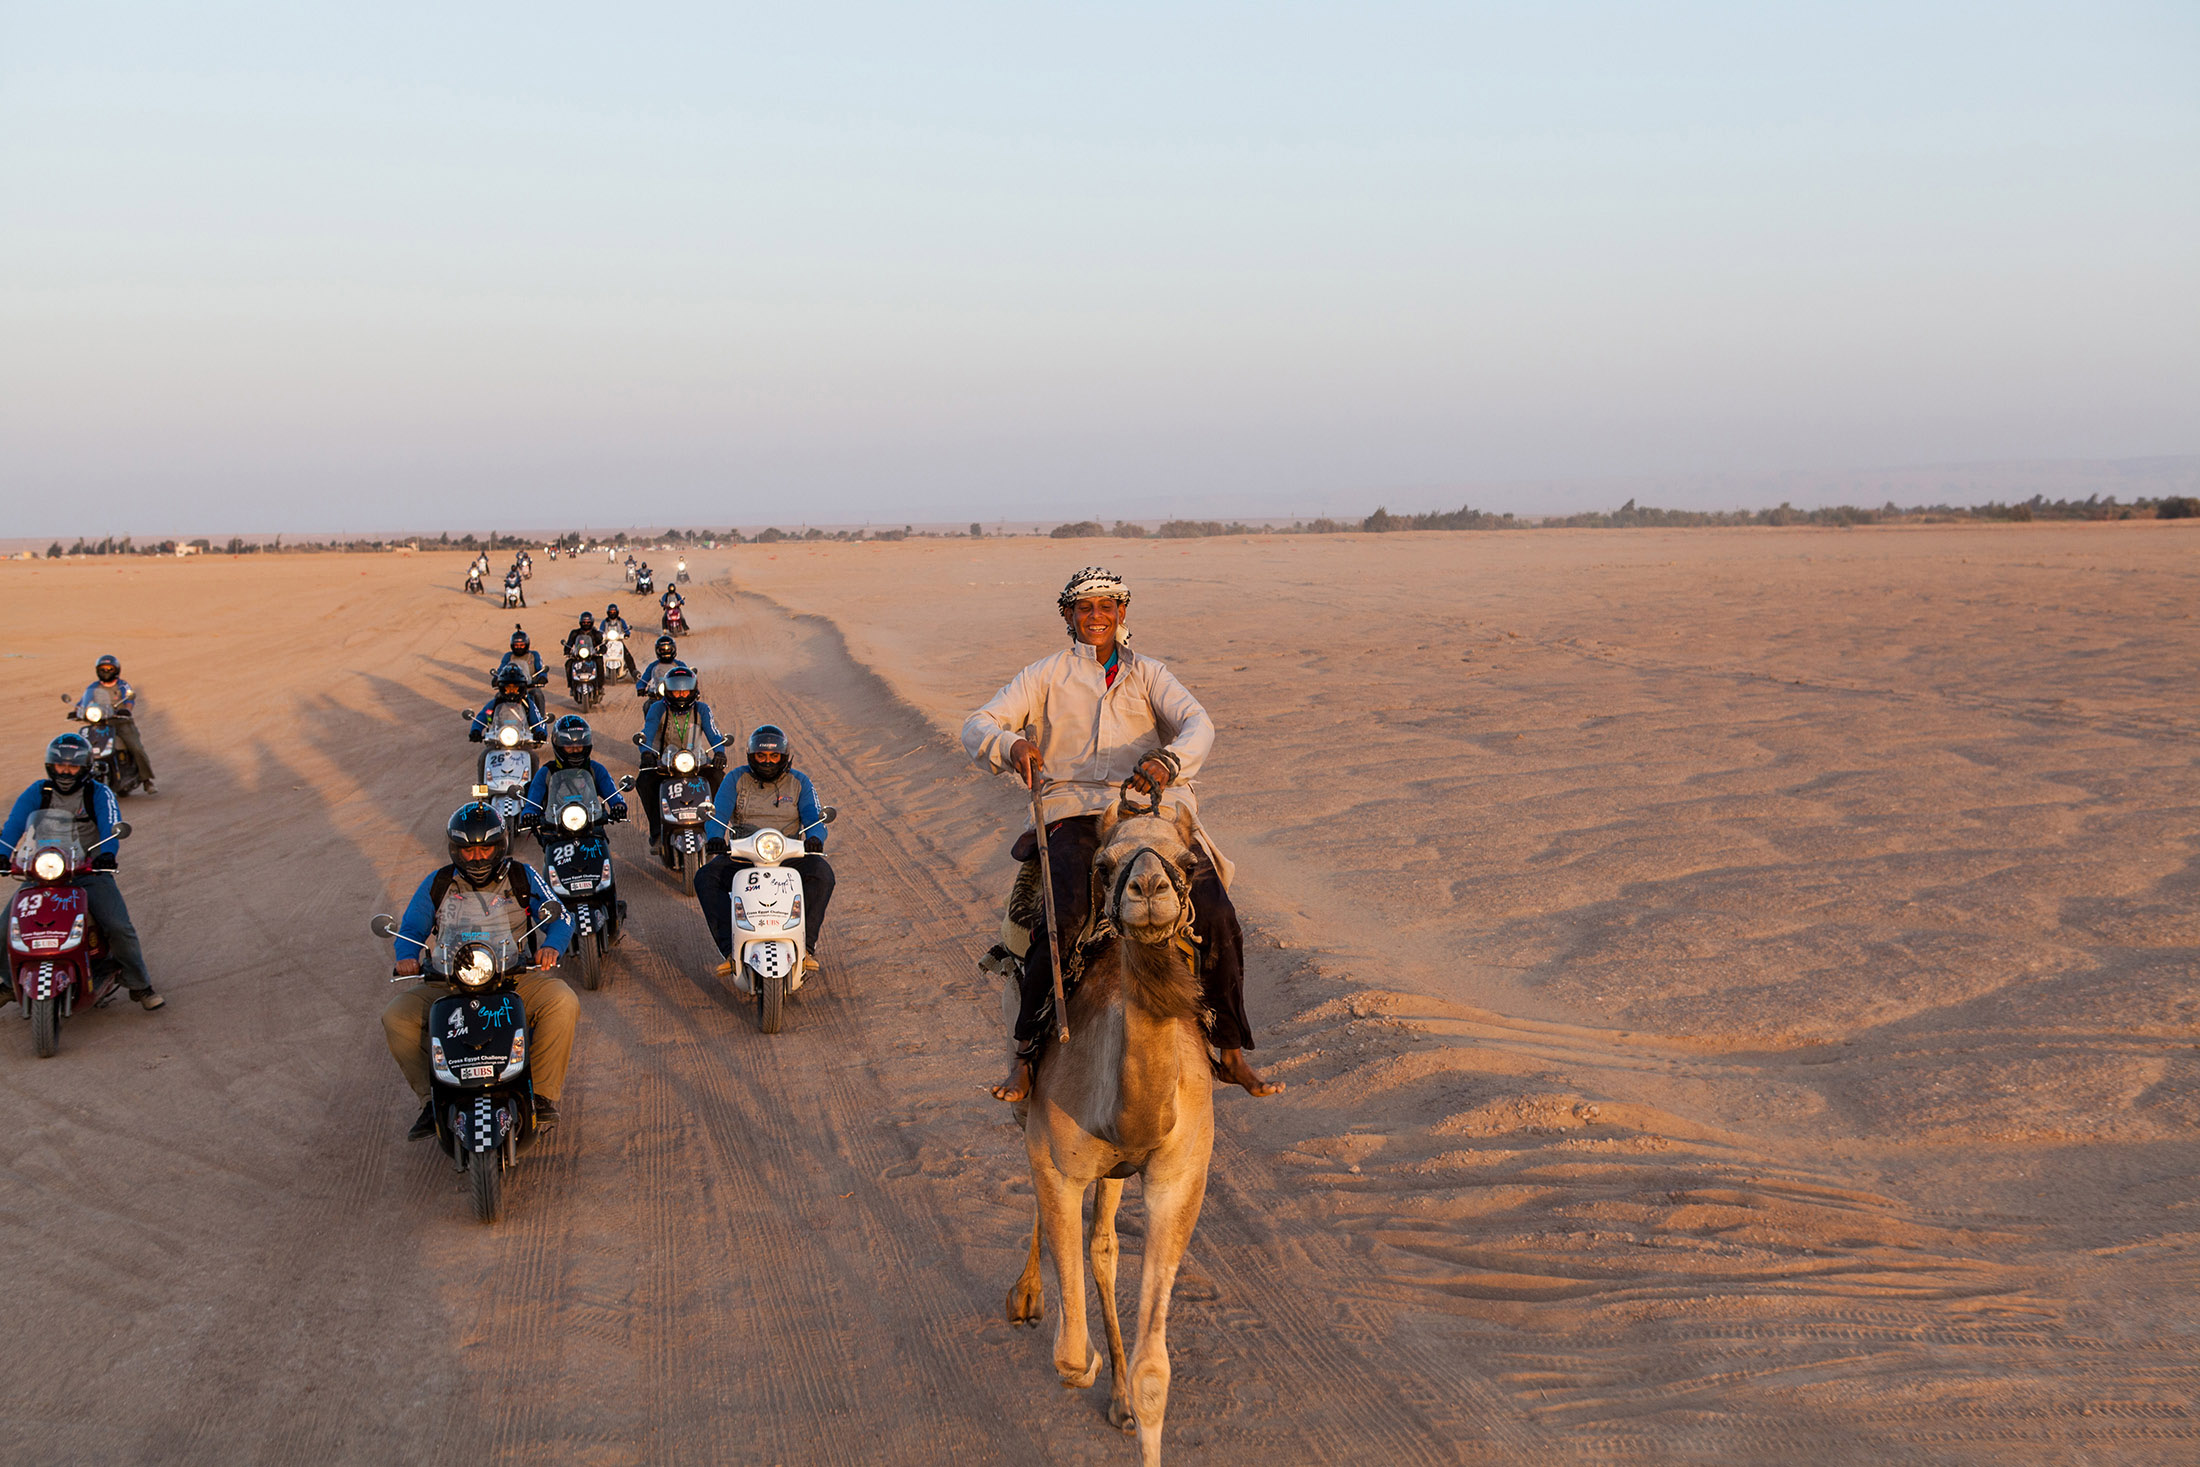 Rider on a camel leading a group of motorcyclists in the desert, Egypt